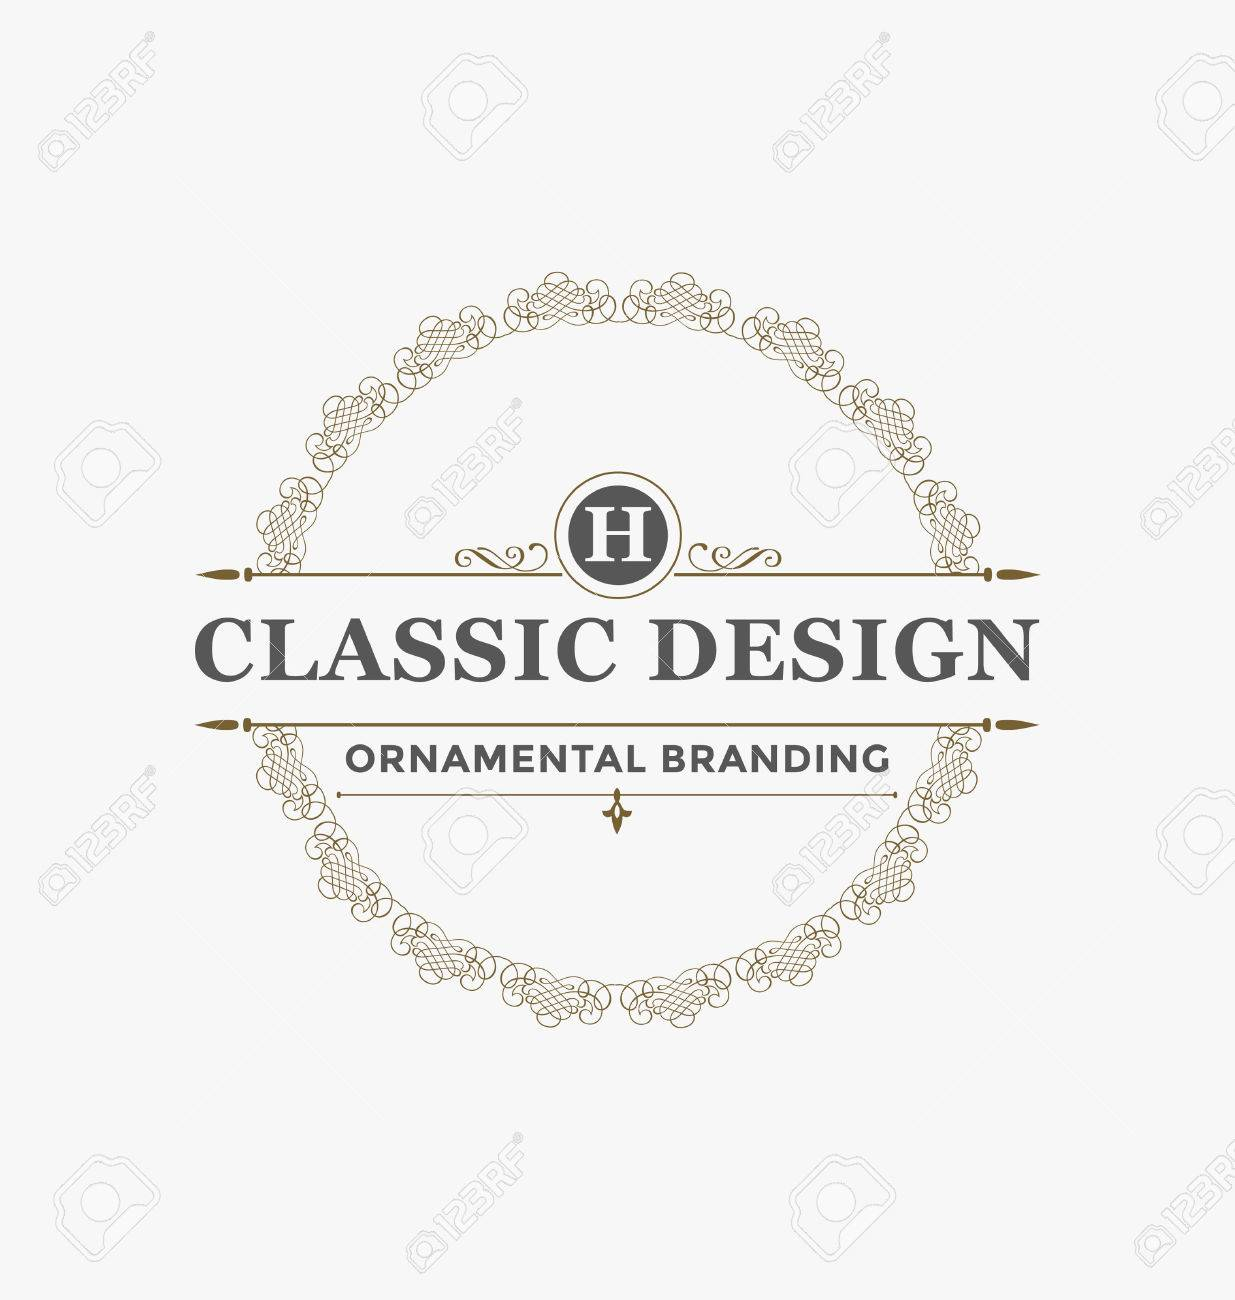 Calligraphic Label Design Template - Classic Ornamental Style. Elegant luxury frame with typography - Ideal logo for restaurant, hotel, cafe and other businesses with classic corporate identity visual - 45168633